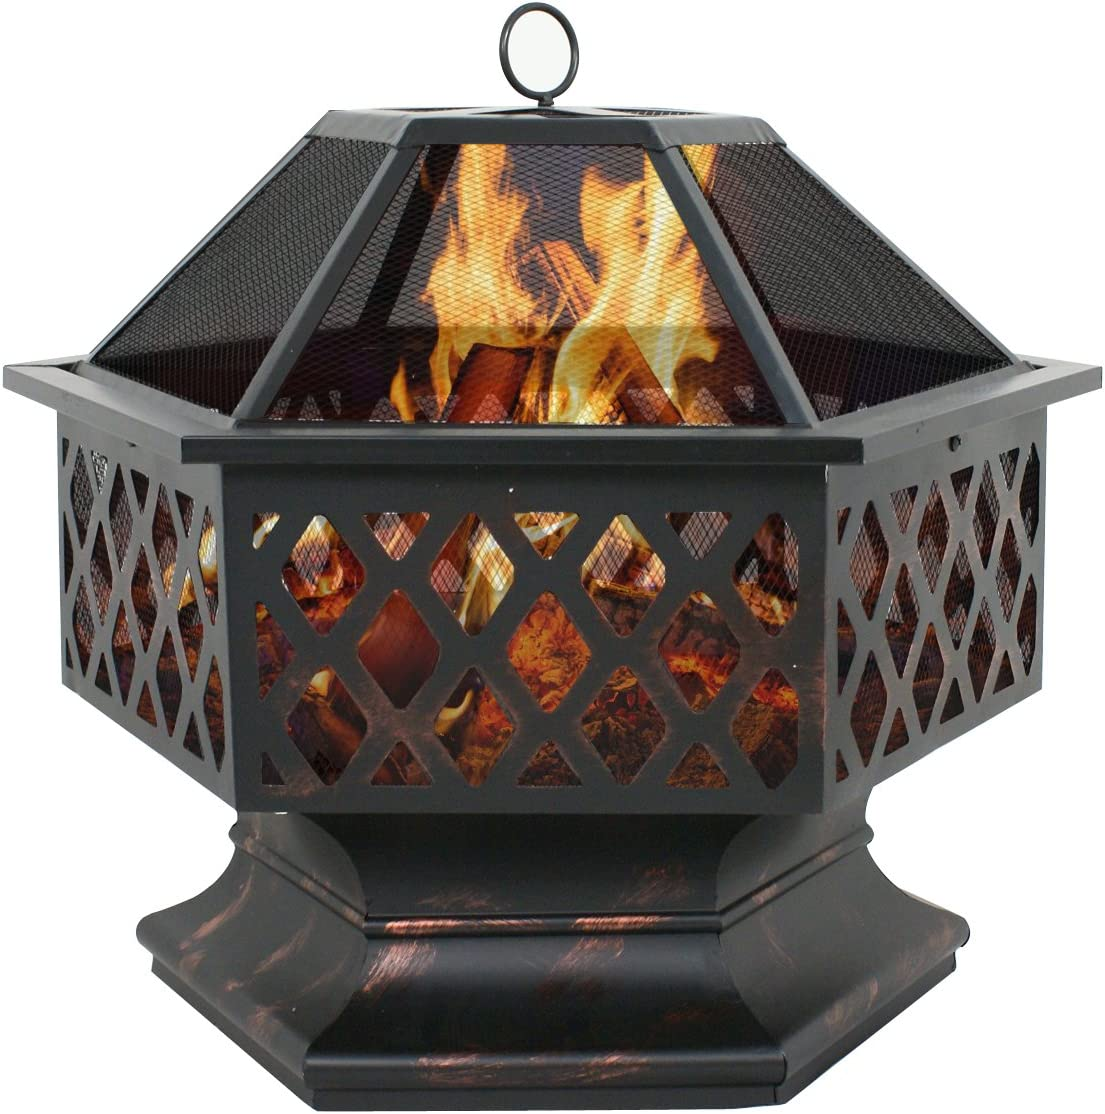 Nova Microdermabrasion 24 Outdoor Fire Pit Hex Shaped Metal FirePit w Spark Screen Cover, Home Patio Garden Backyard Firepit Bowl Wood Burning Fireplace